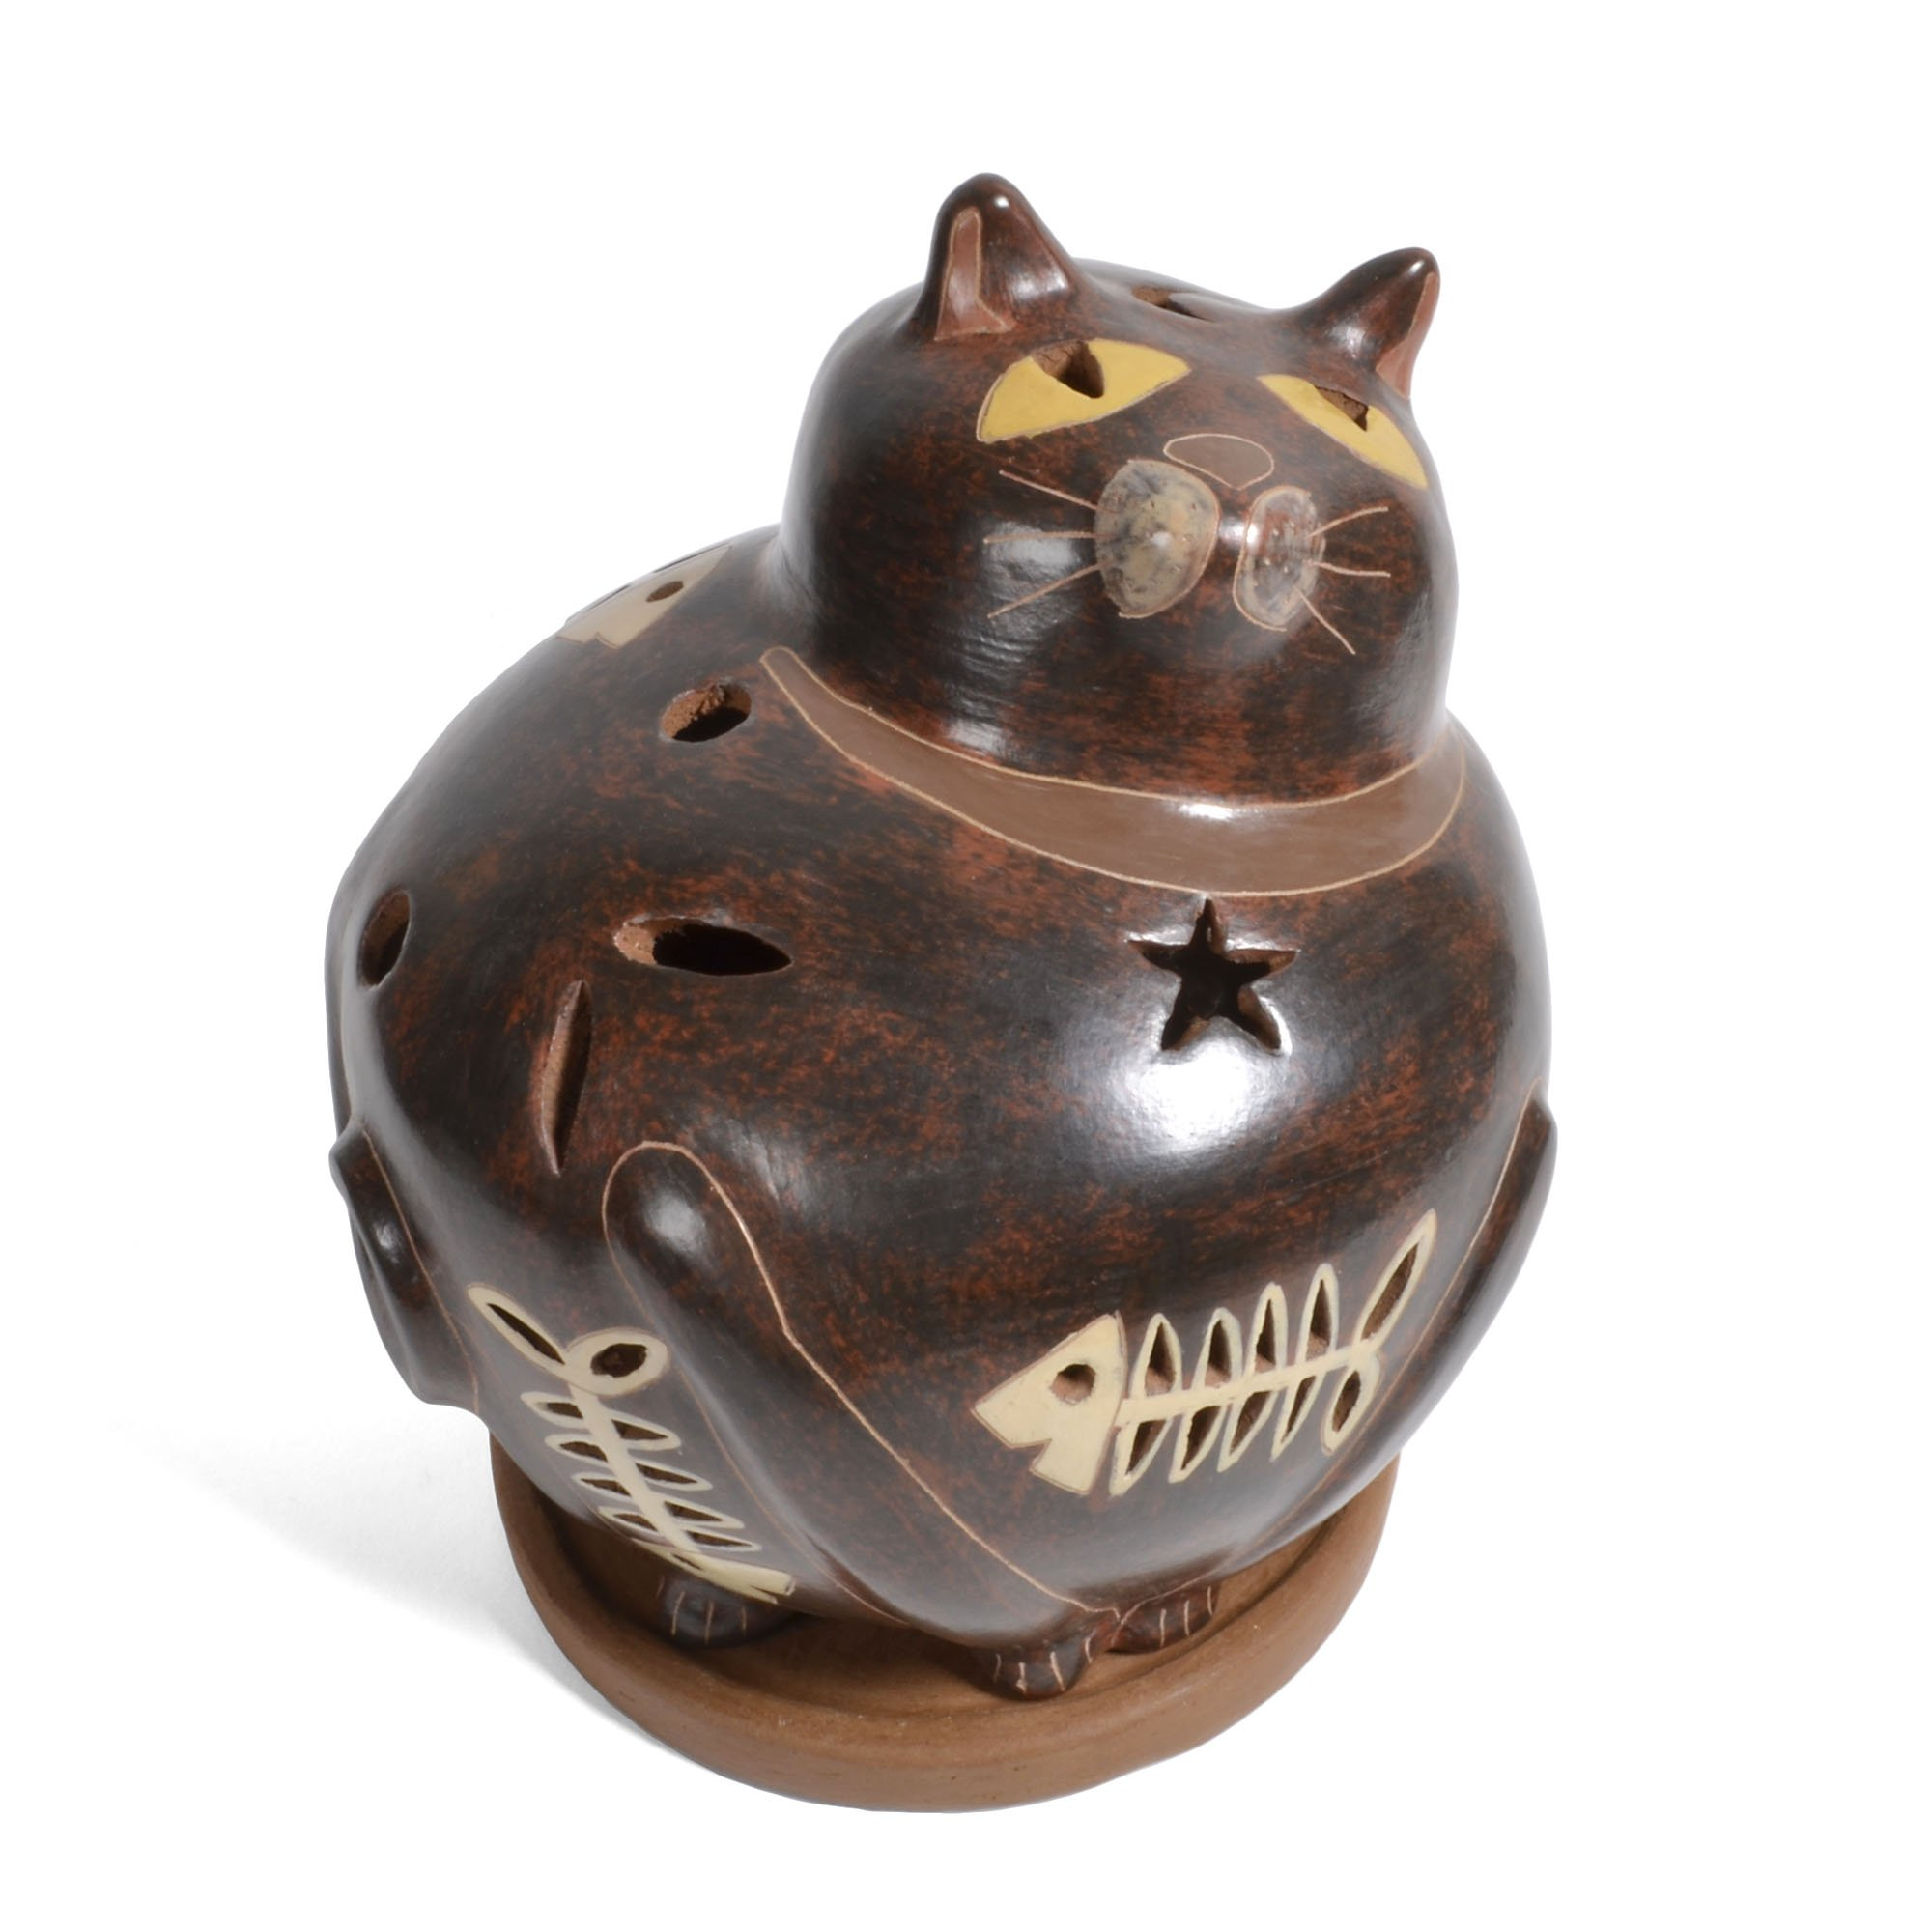 Nicaraguan Pottery Fat Cat Candle Shade by Mundo Village